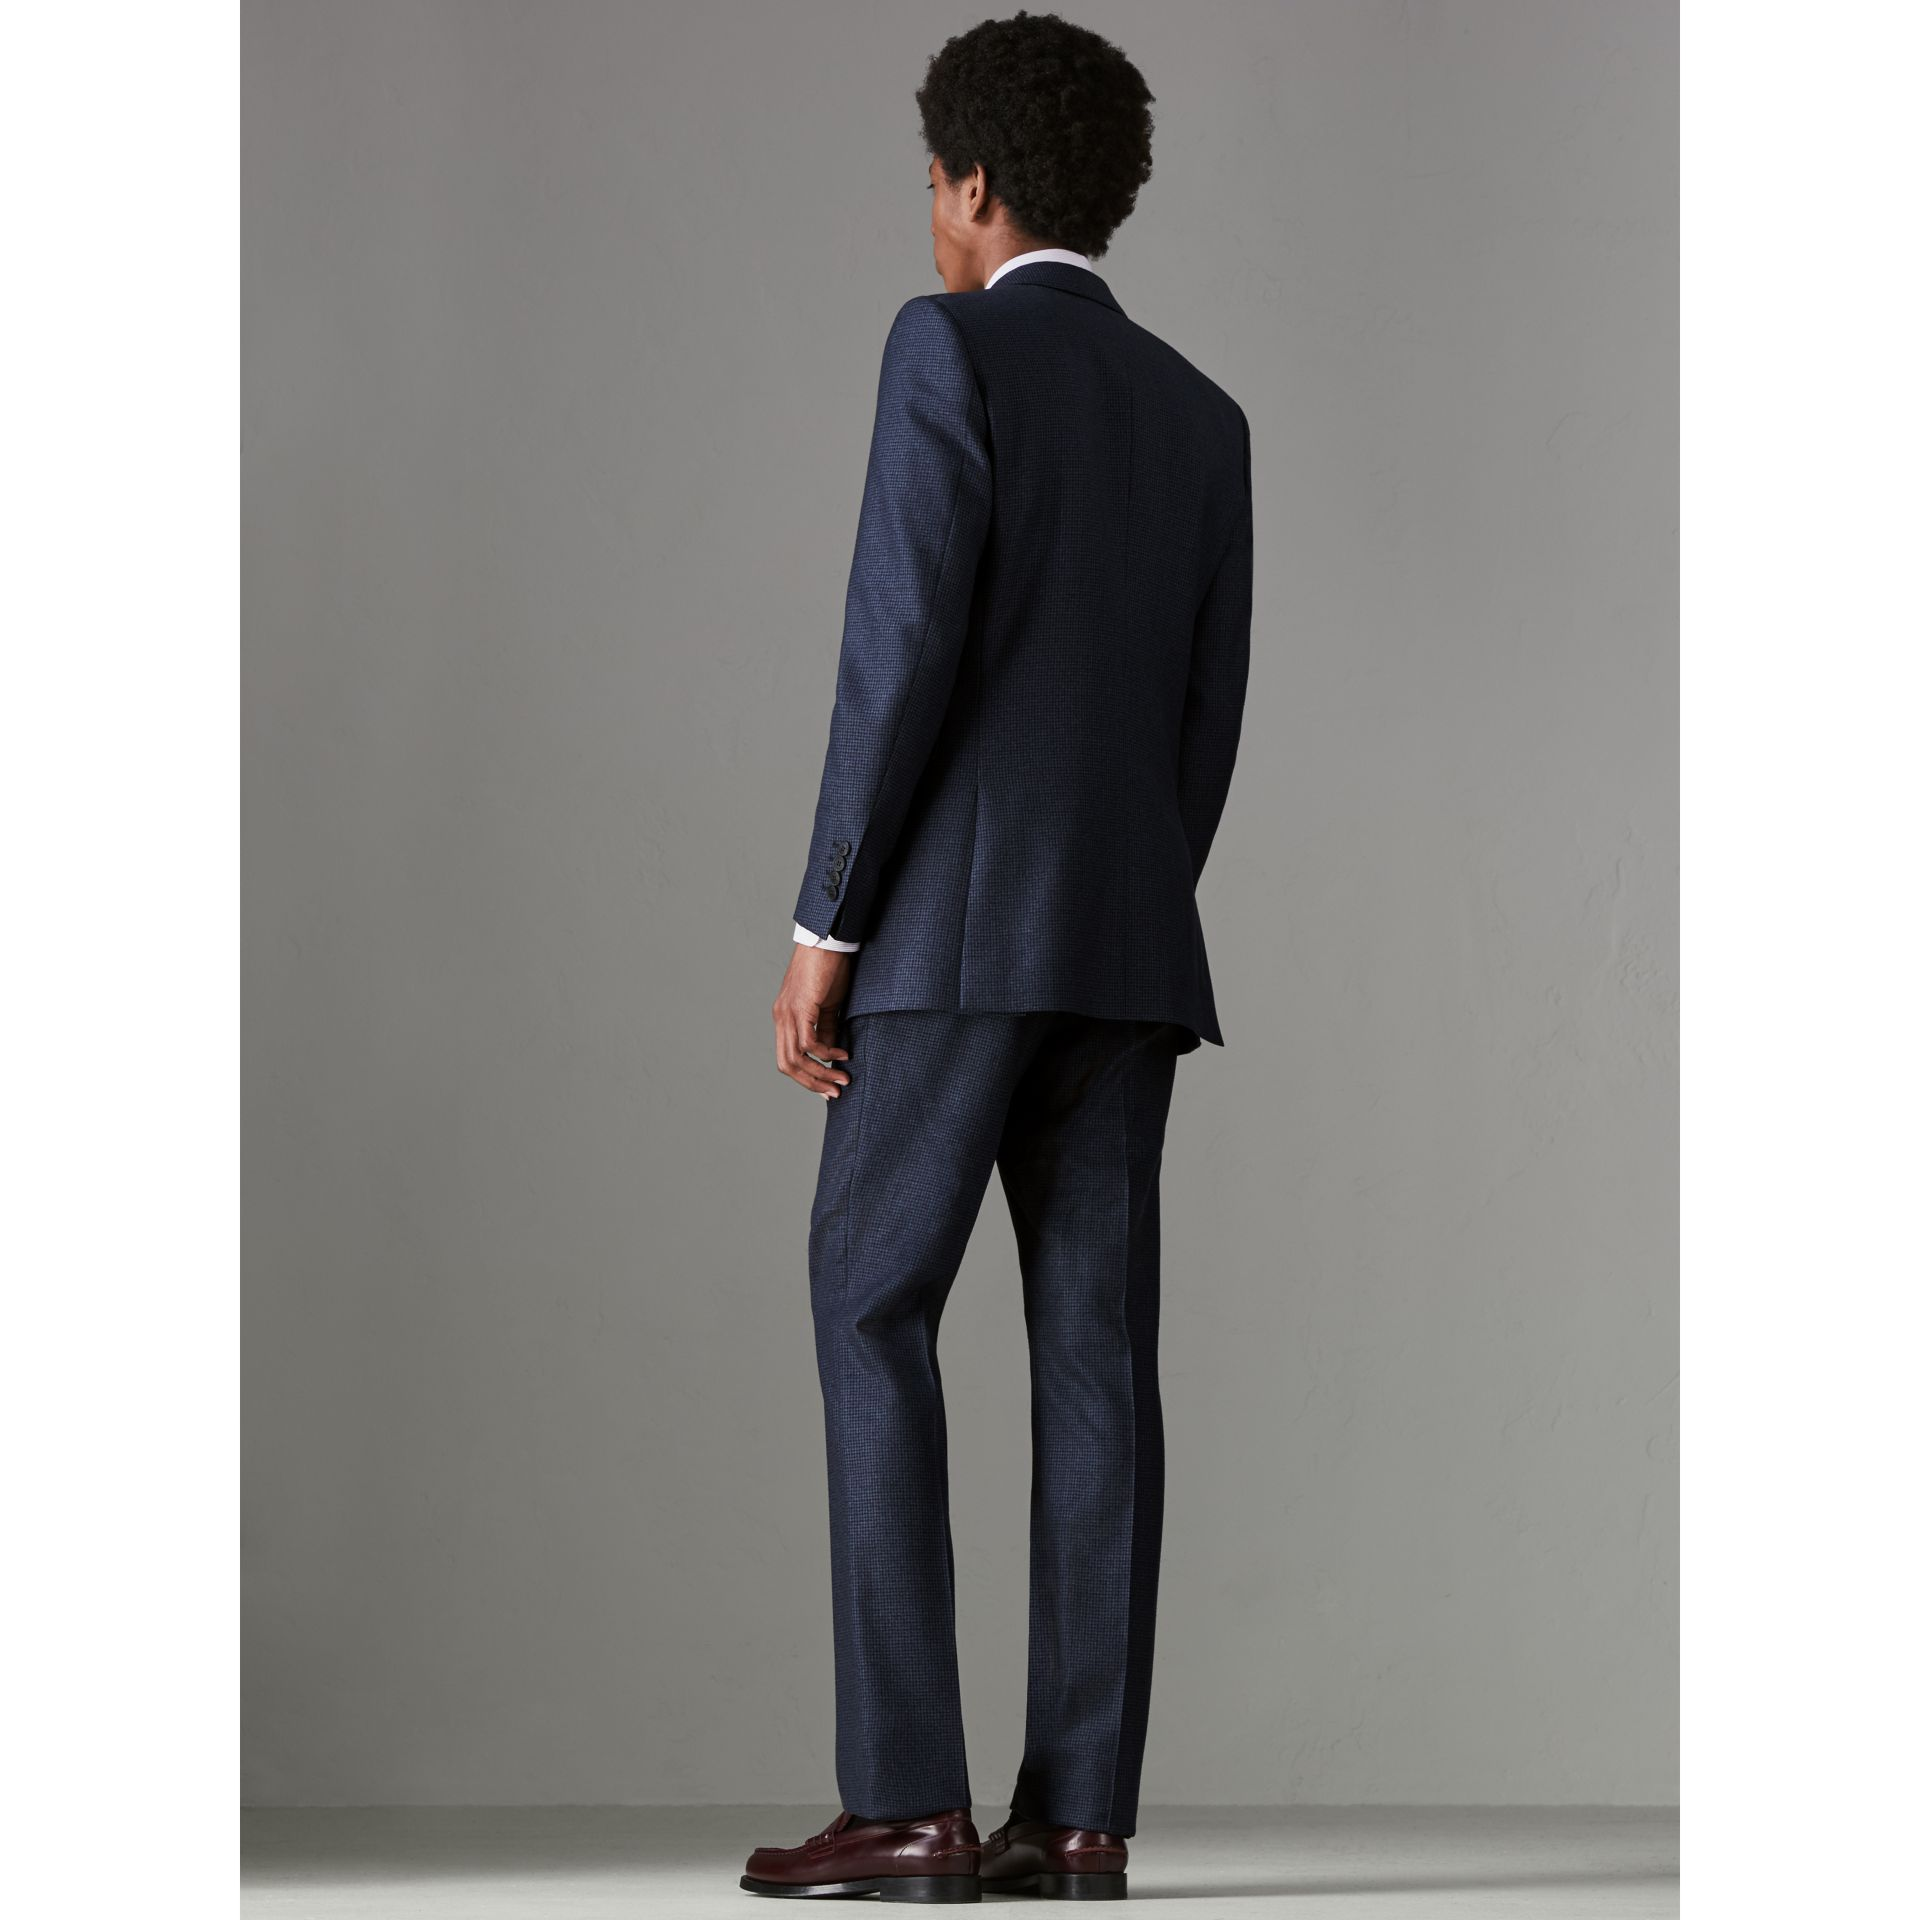 Slim Fit Puppytooth Wool Suit in Navy - Men | Burberry United States - gallery image 2